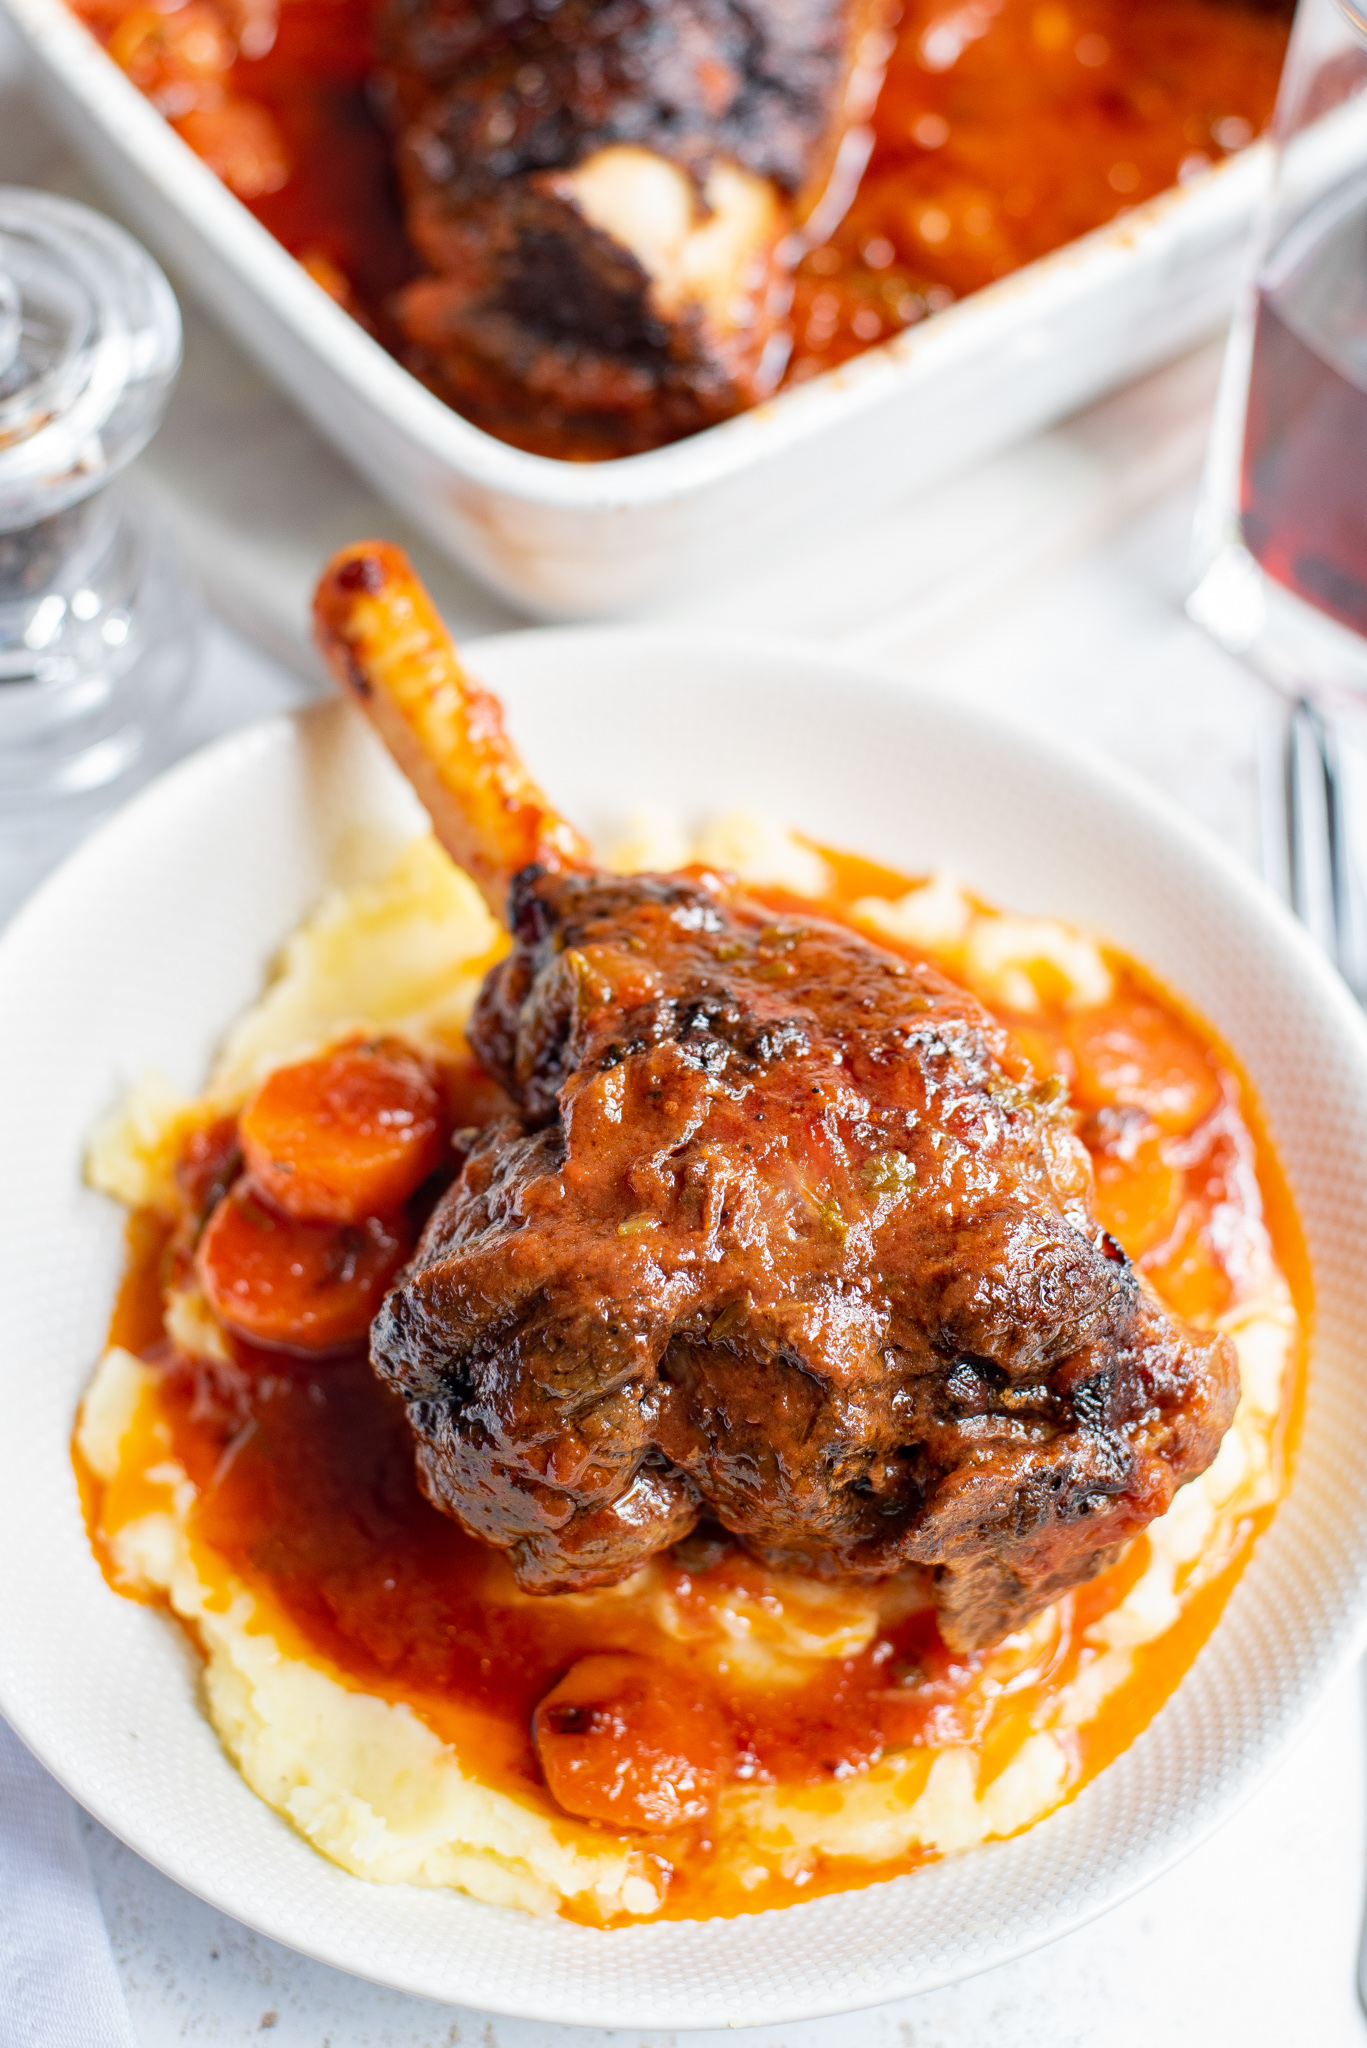 Braised Lamb Shank Recipe in a white bowl.